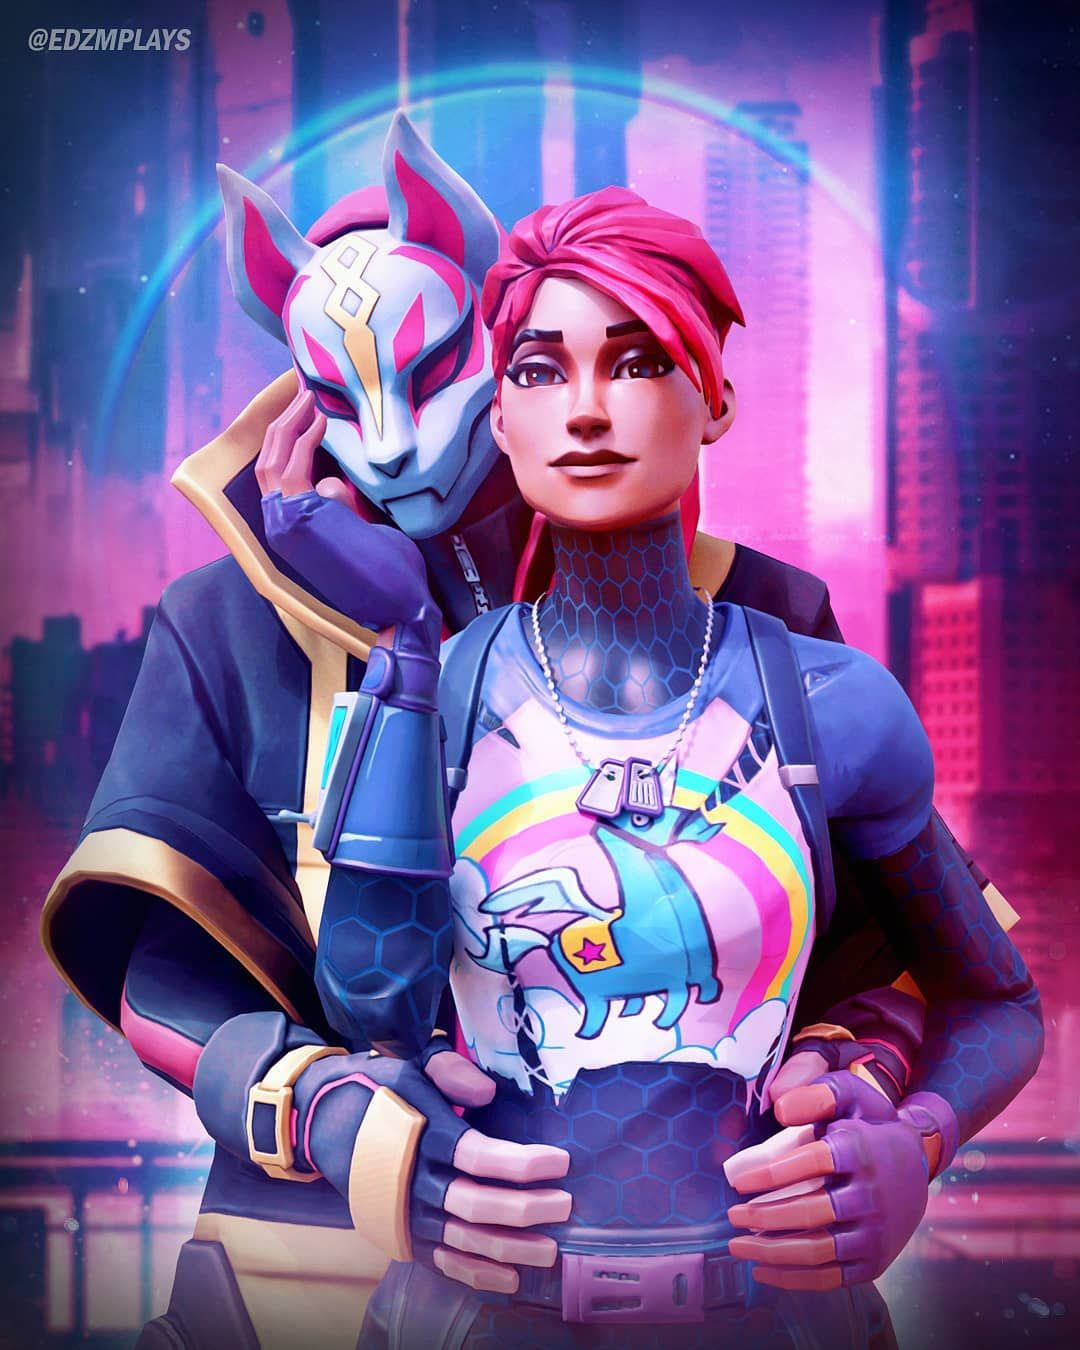 1 973 Likes 35 Comments Edzmplays On Instagram The Power Couple Of Fortnite Please Tag If Reposting My Art Gamer Pics Fortnite Character Wallpaper